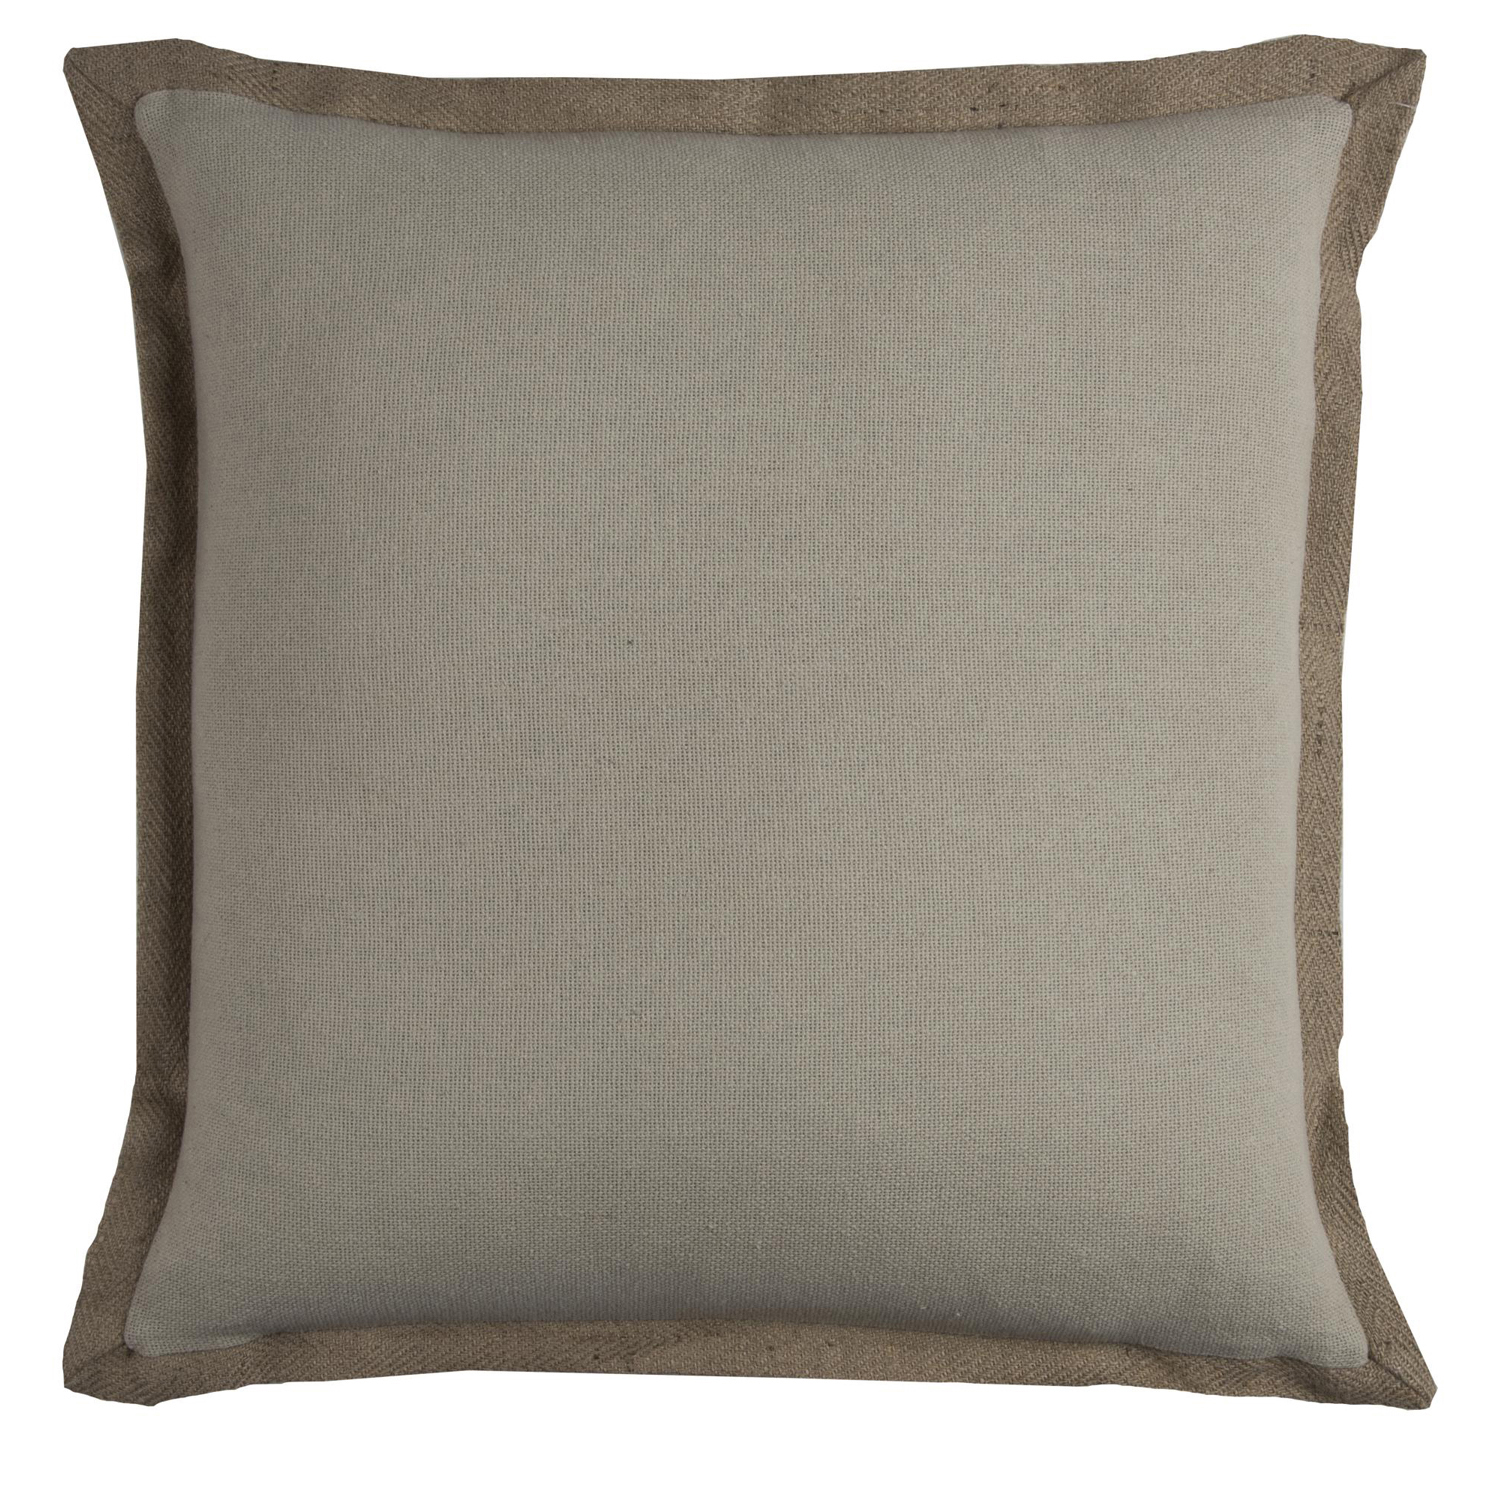 Trimmed Solid Natural Pillow Cover